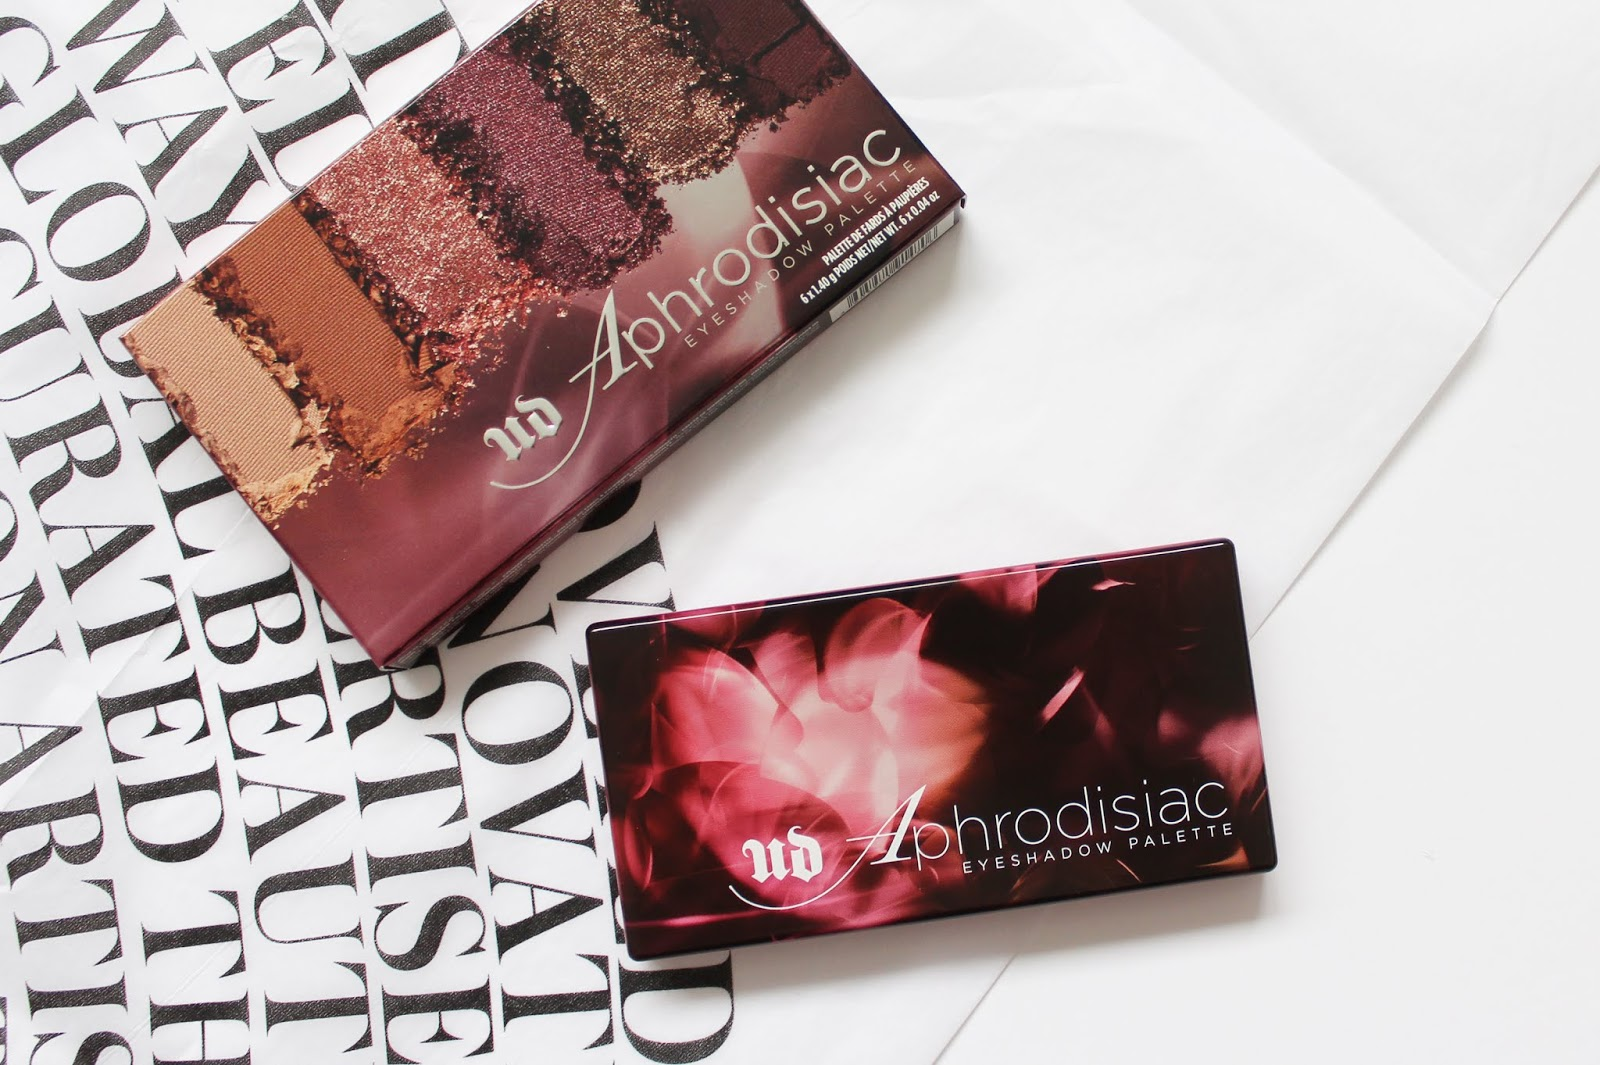 URBAN DECAY | Aphrodisiac Eyeshadow Palette - Review + Swatches - CassandraMyee